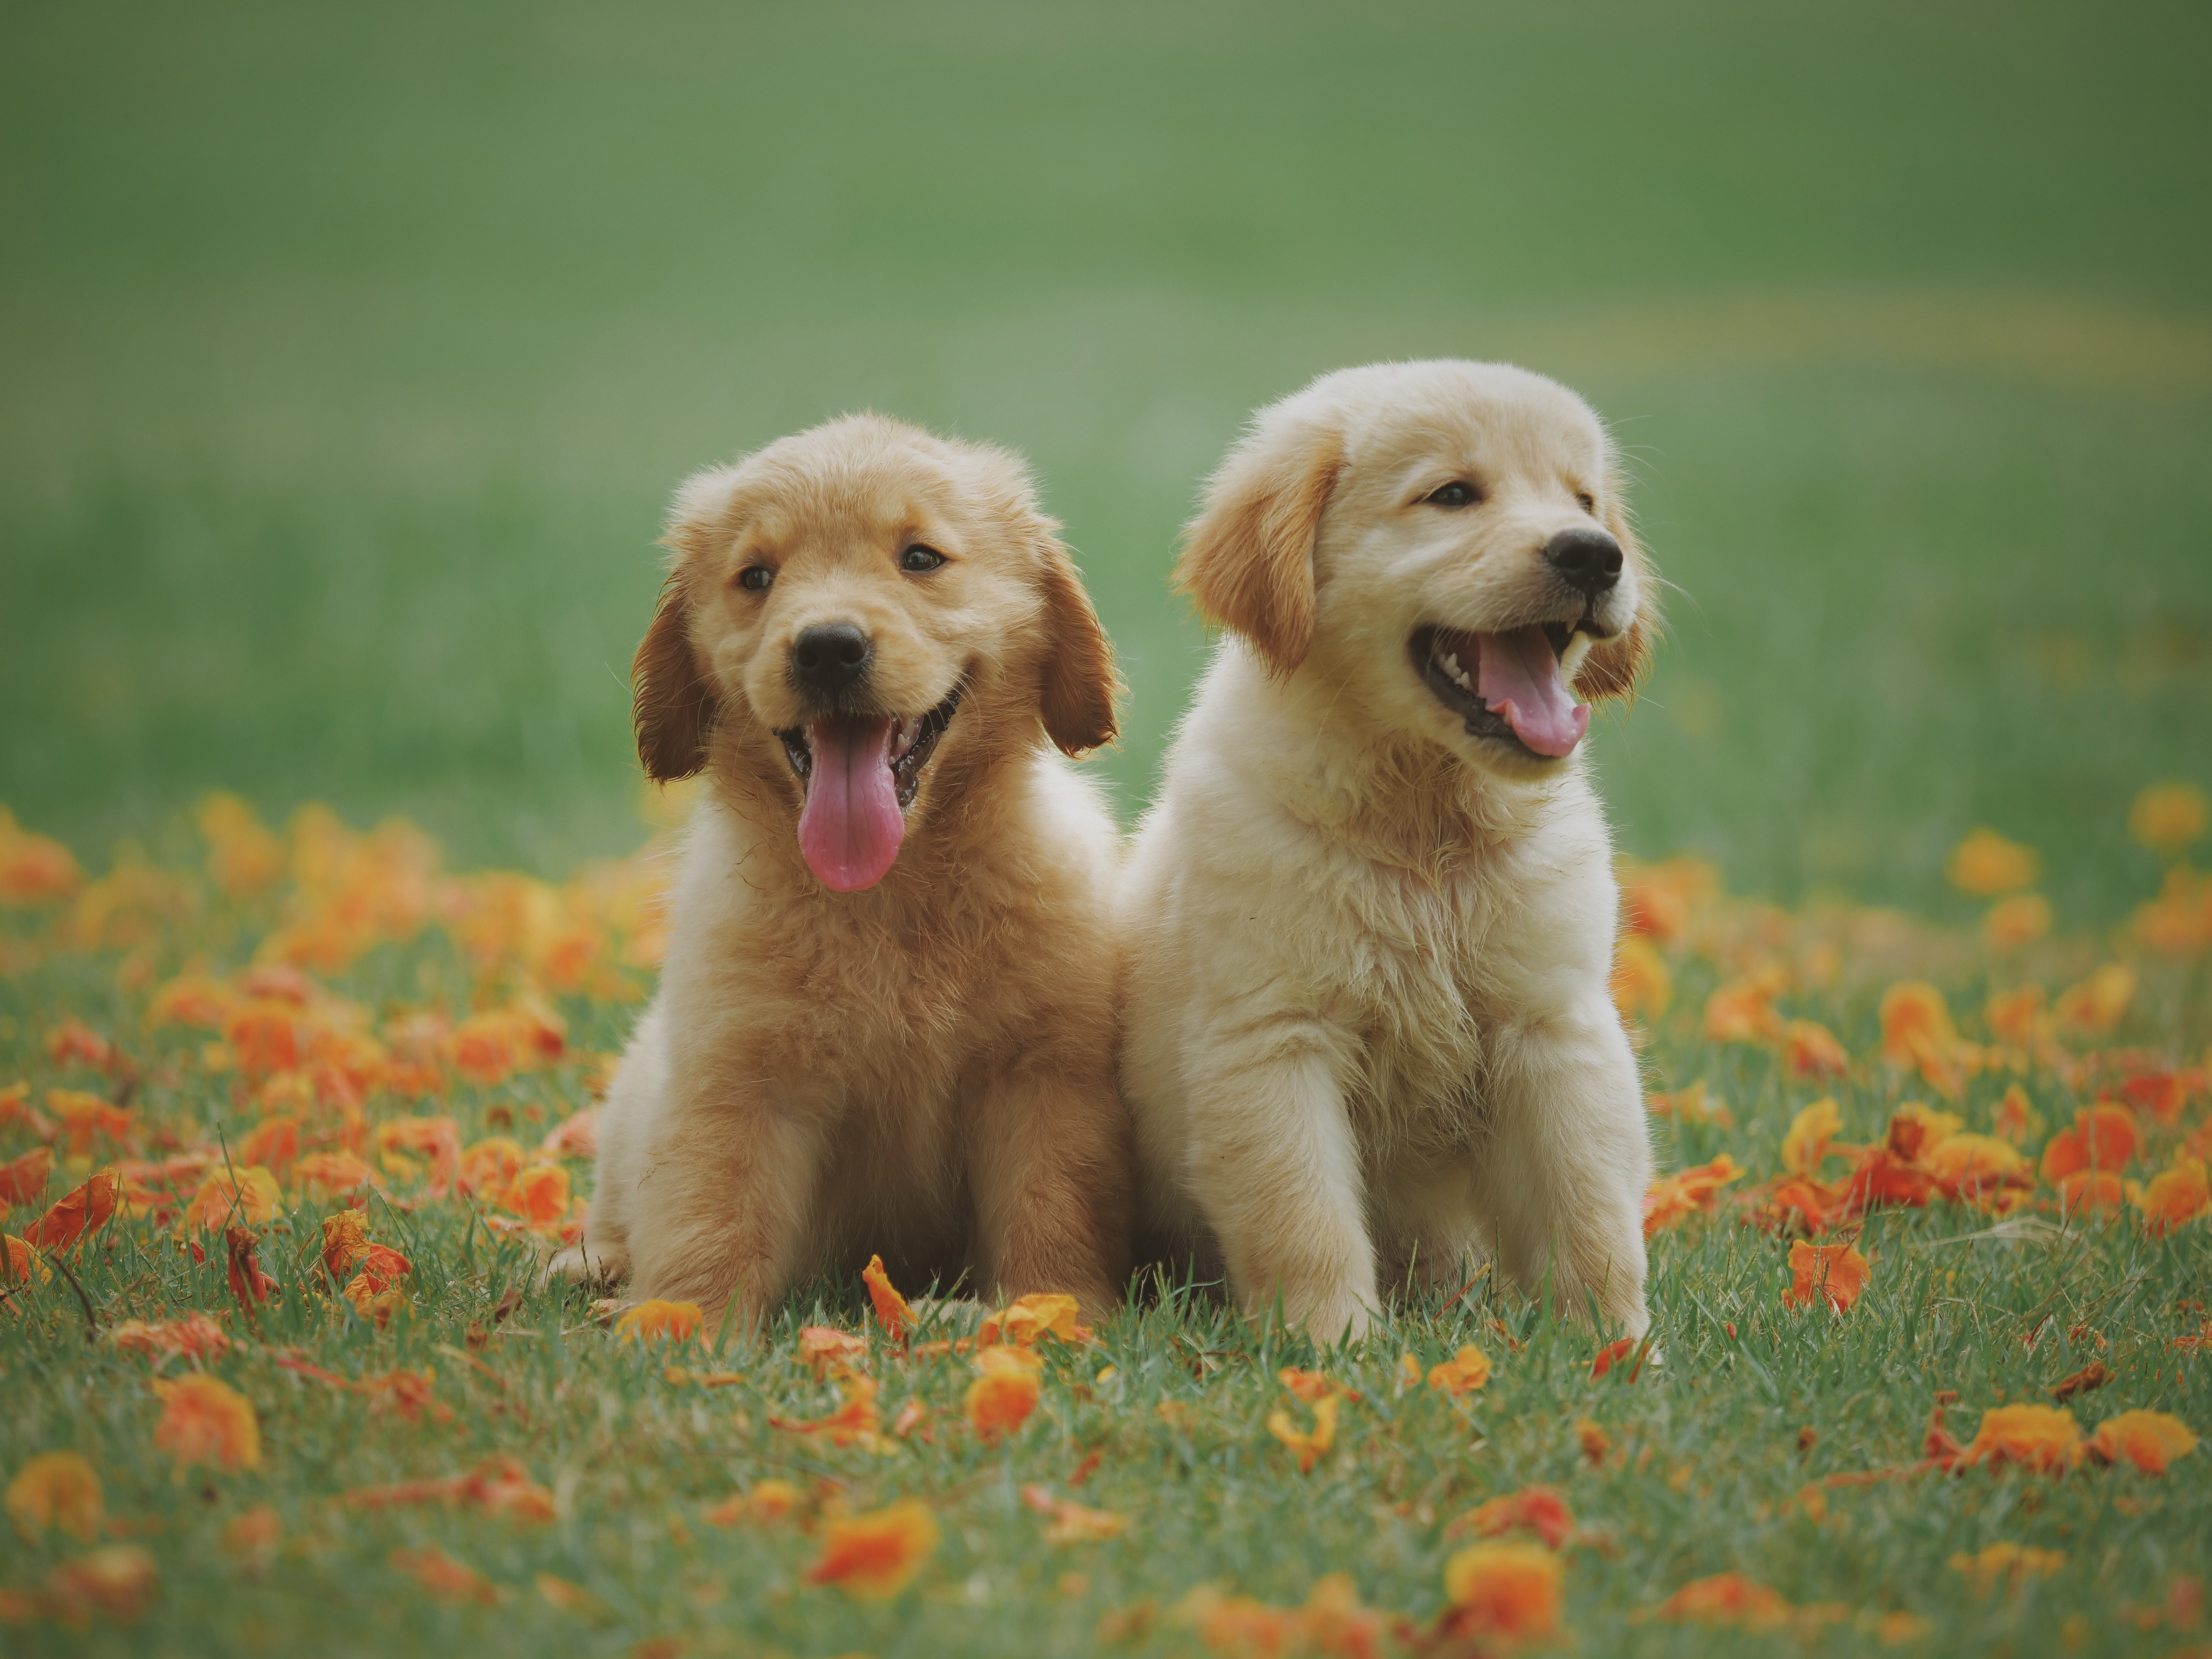 pbs.org - Welcome to PBS, the Puppy Broadcasting Service